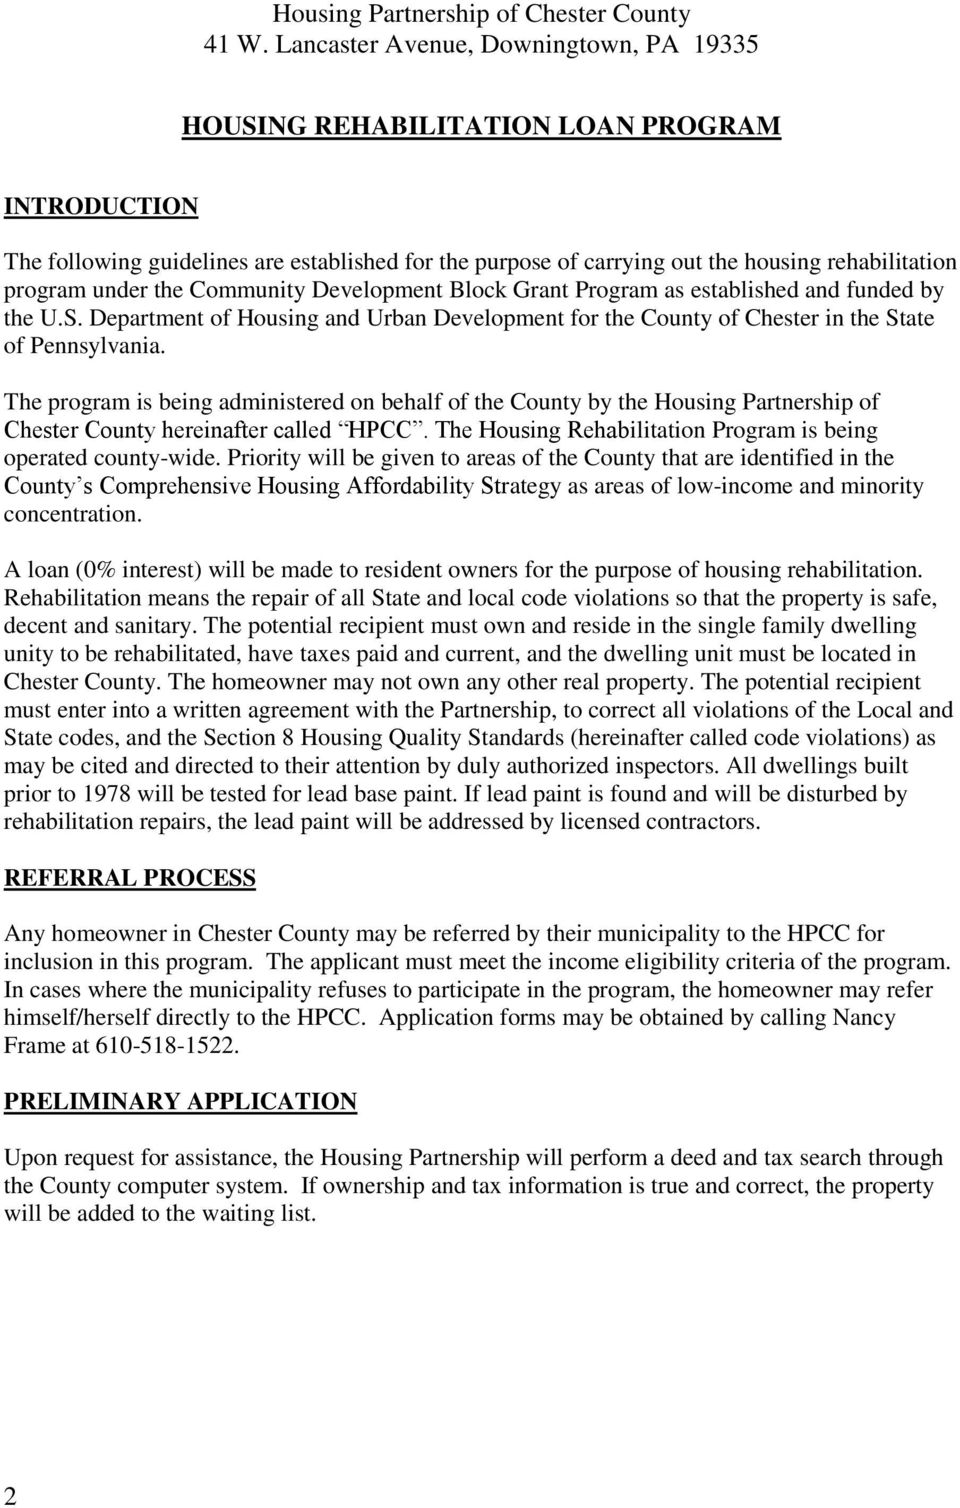 under the Community Development Block Grant Program as established and funded by the U.S. Department of Housing and Urban Development for the County of Chester in the State of Pennsylvania.